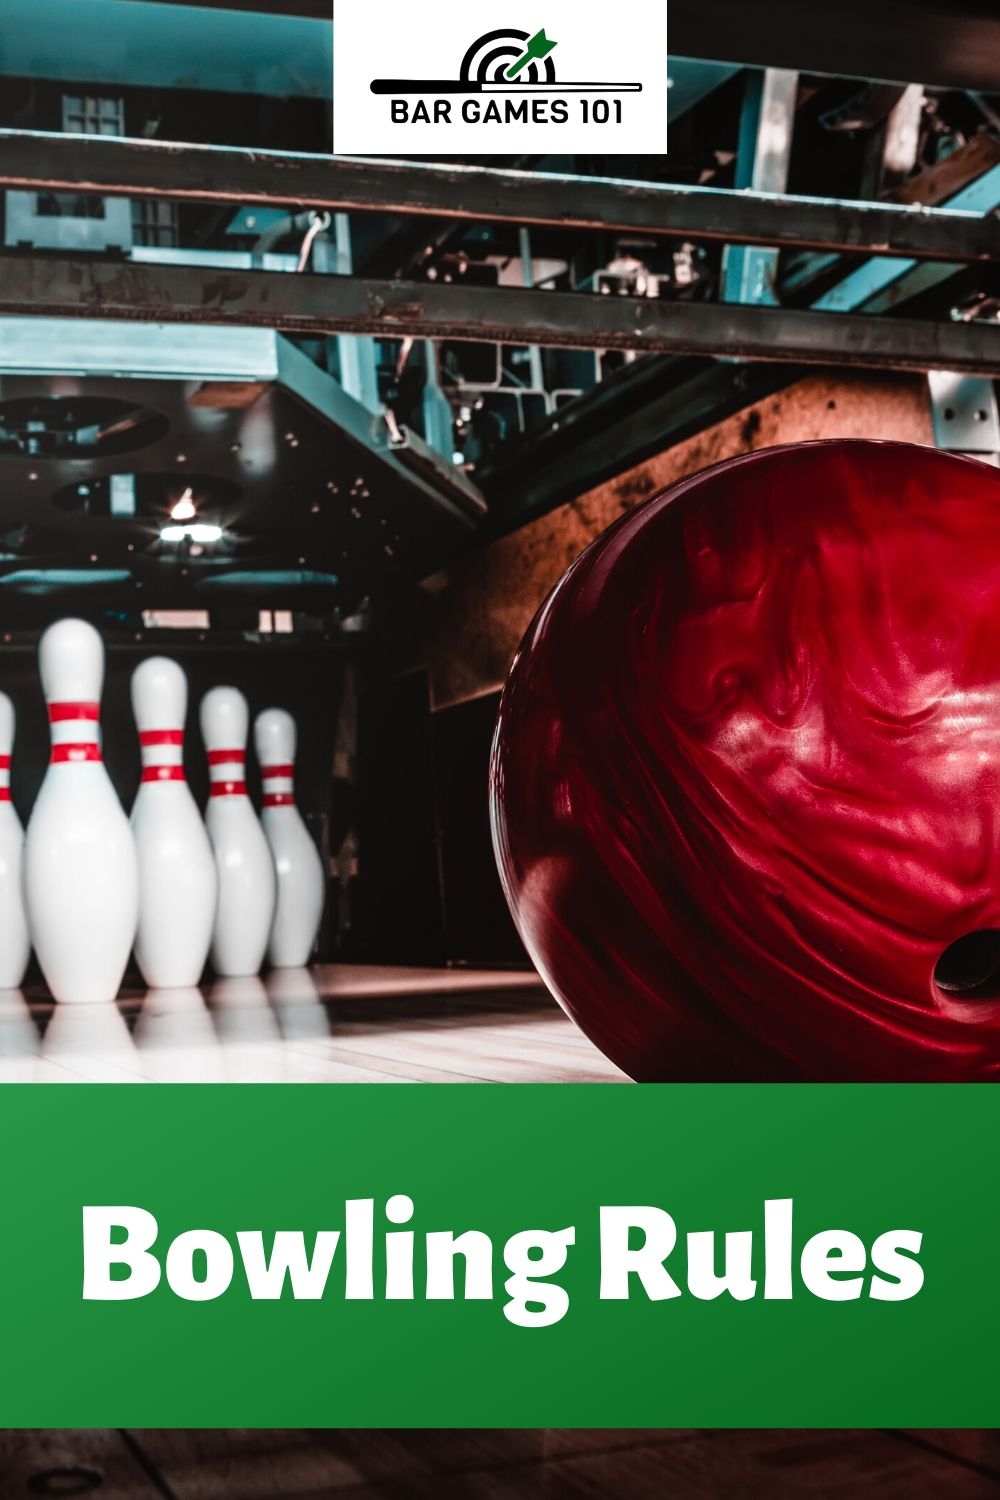 TenPin Bowling Rules Game Overview Bar Games 101 Bar